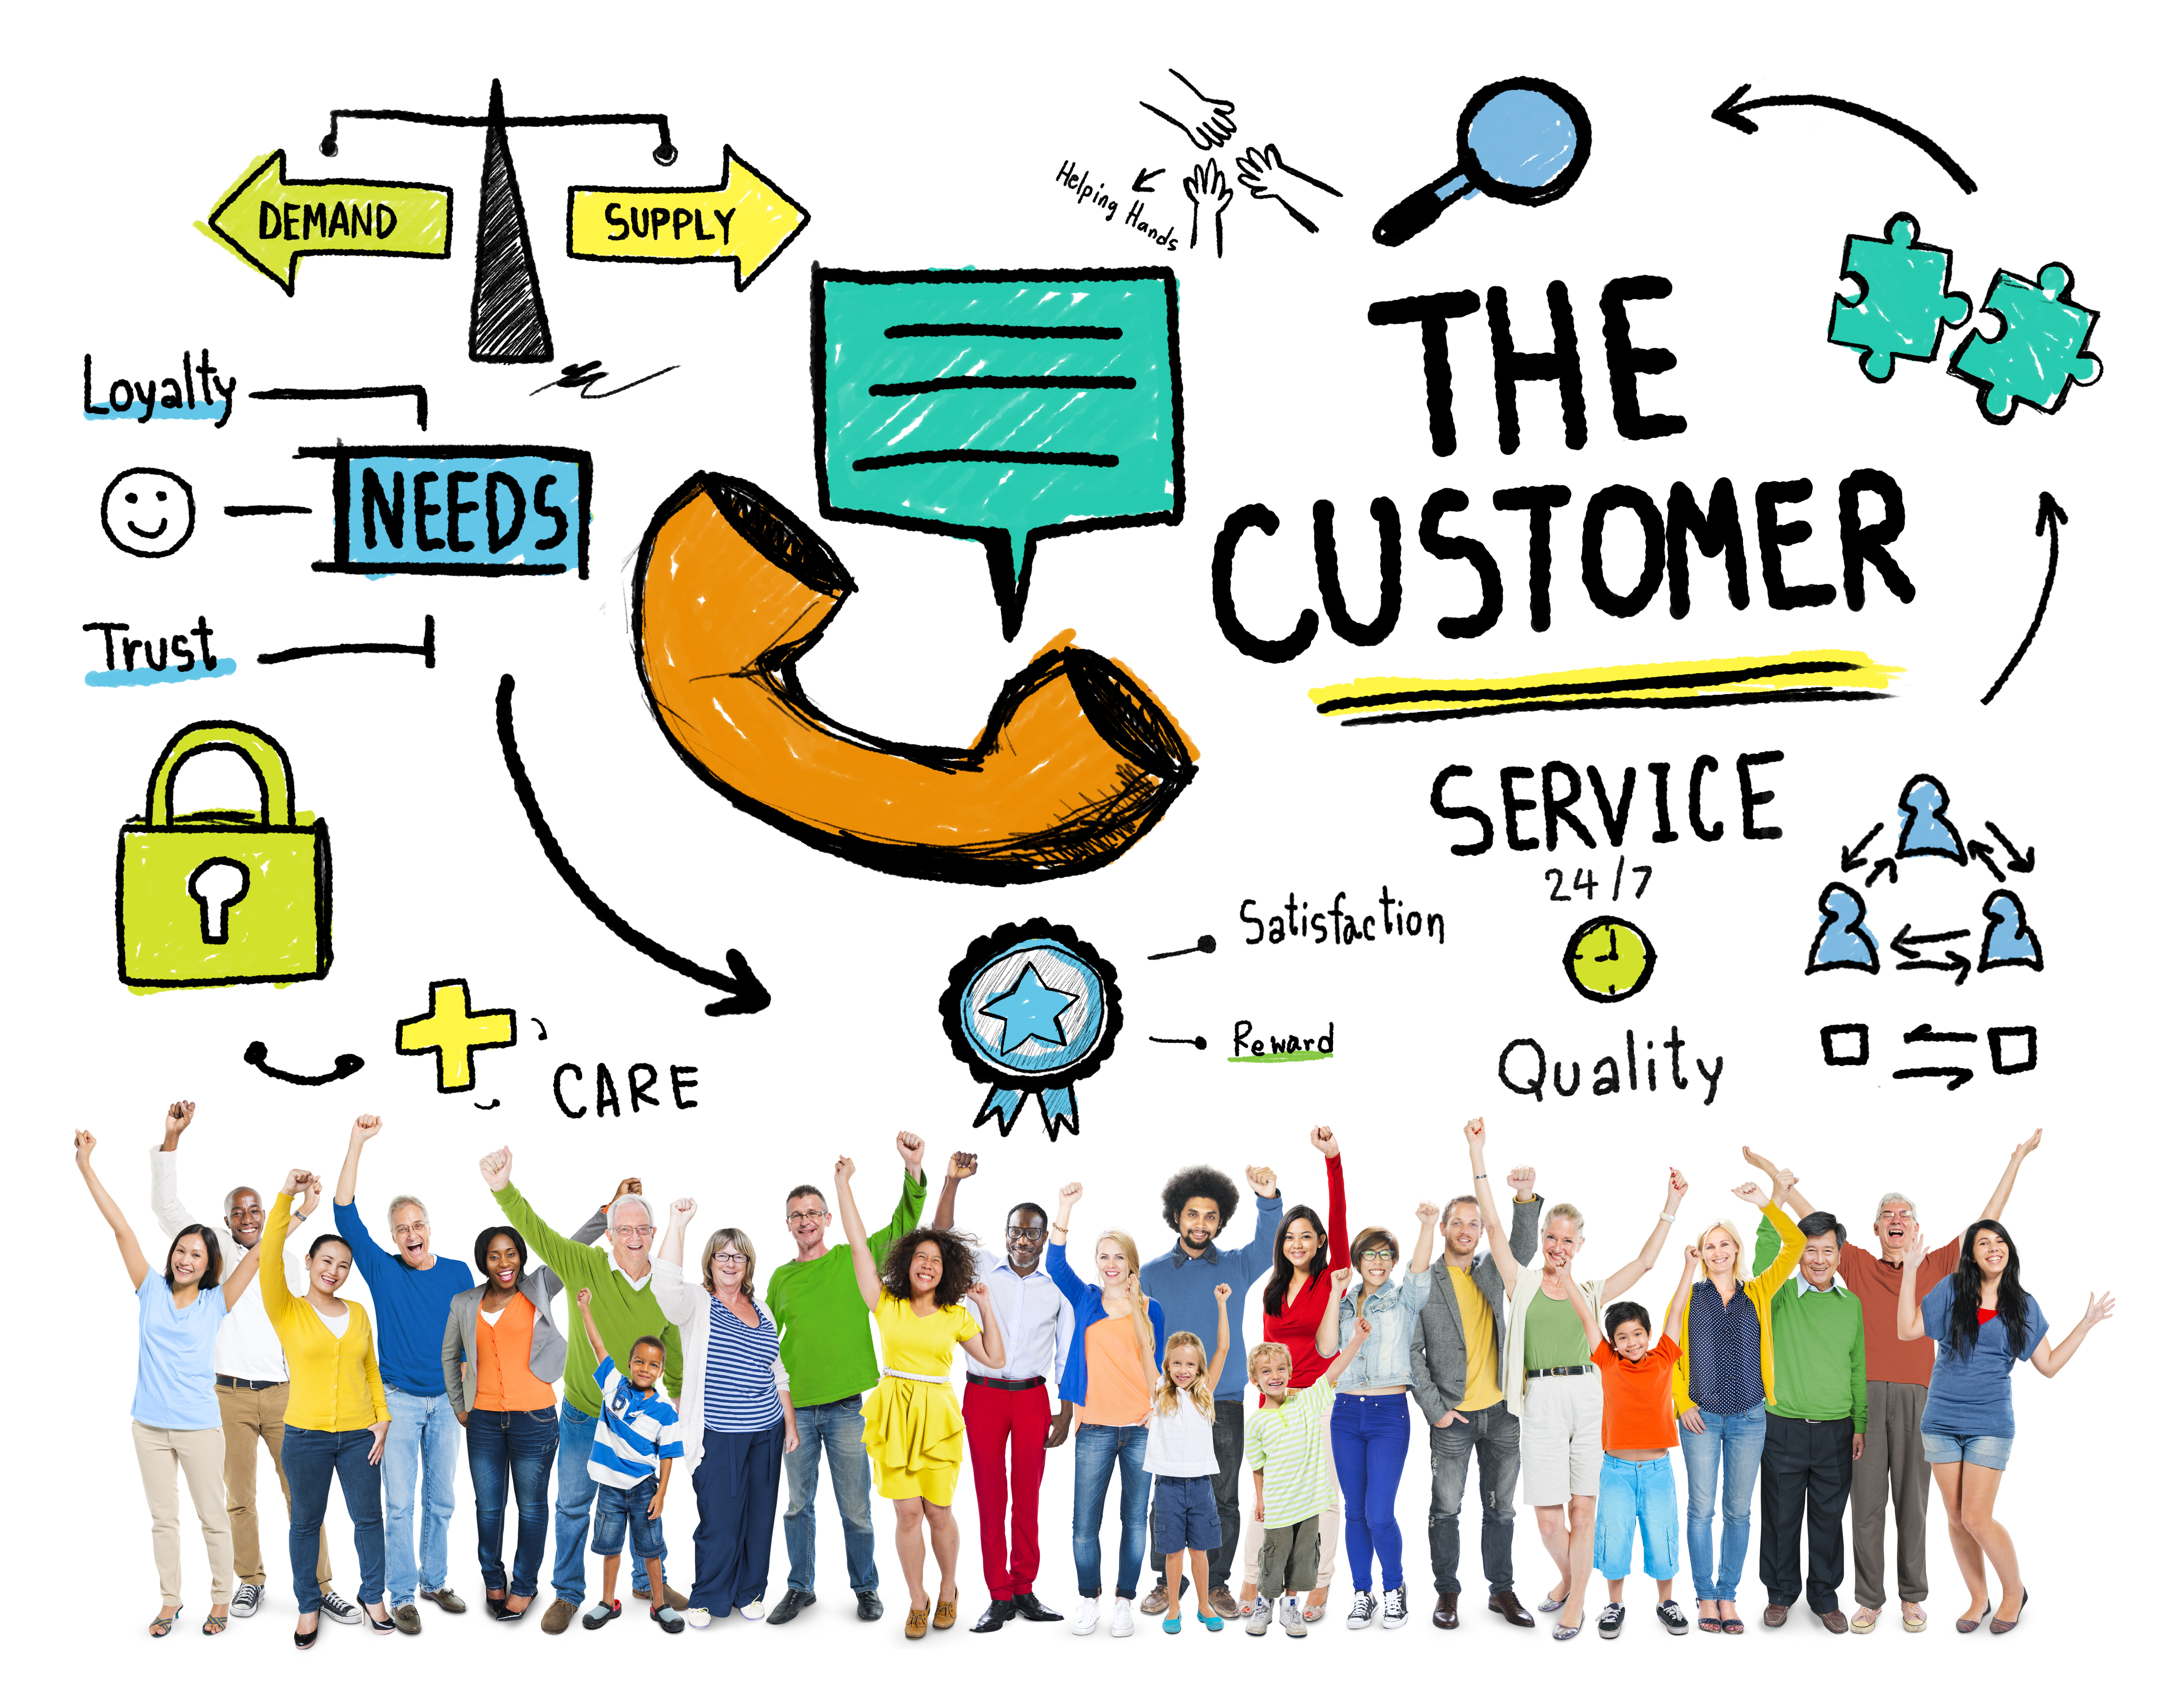 Colorful cartoon drawings like a telephone, magnifying glass, ribbon, and clock, along with a large, eclectic group of real people illustrates the positive ideas of customer service, with words like service, 24-7, quality, care, loyalty, and trust.